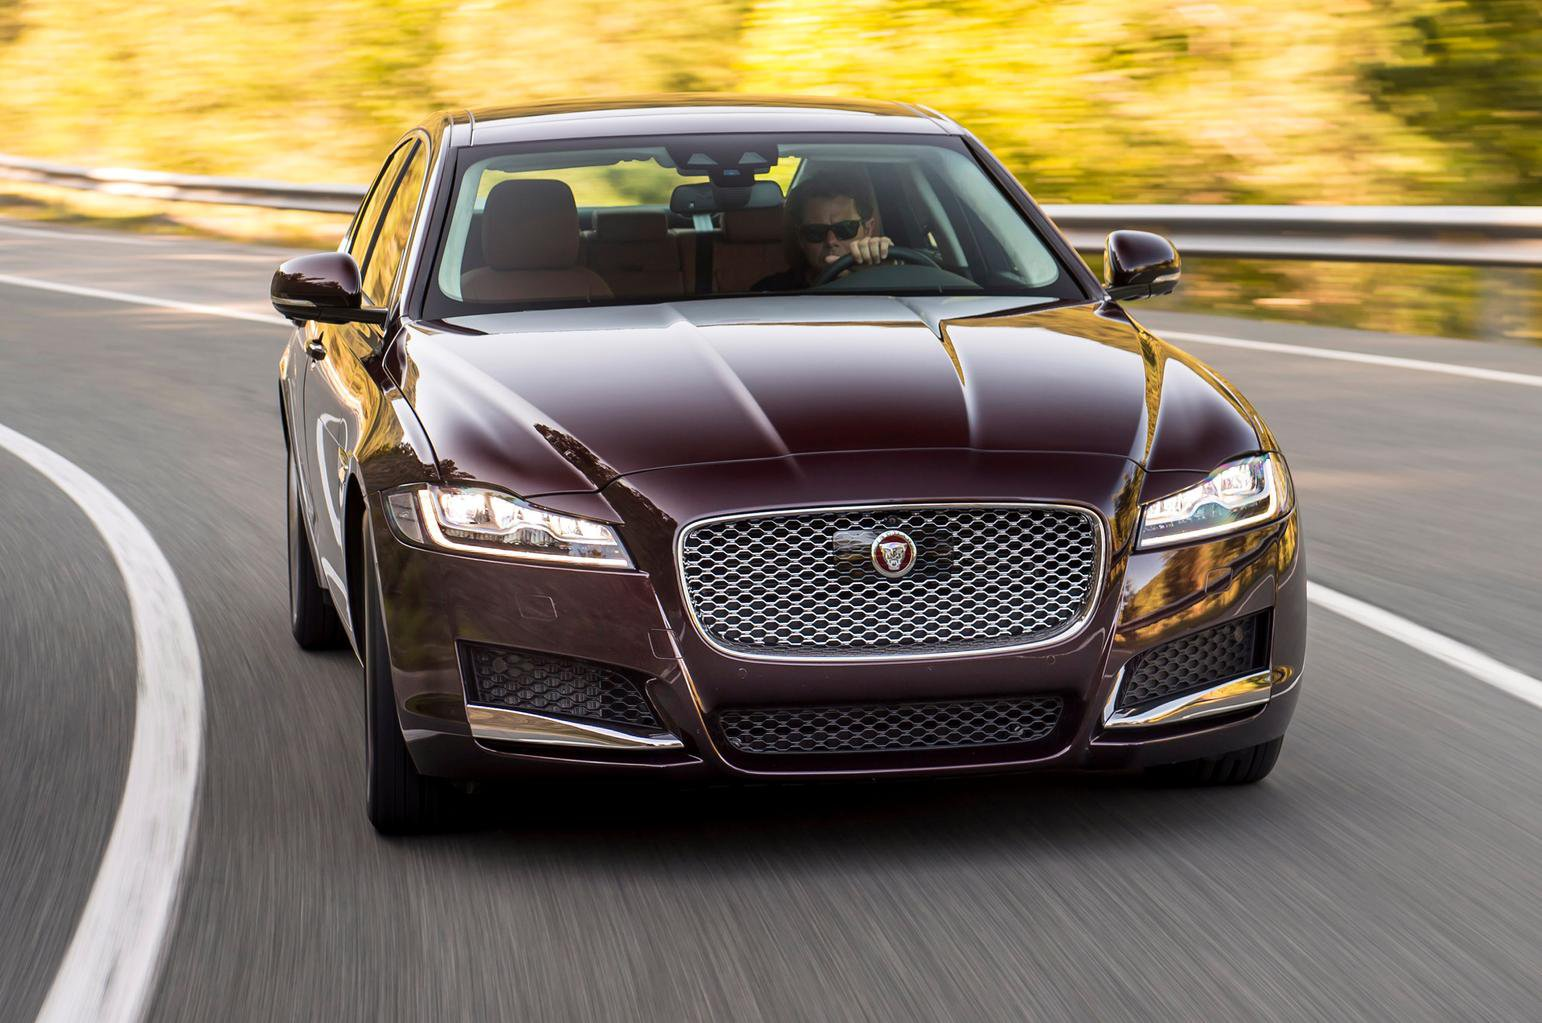 2015 Jaguar XF 3.0 TDV6 300 review